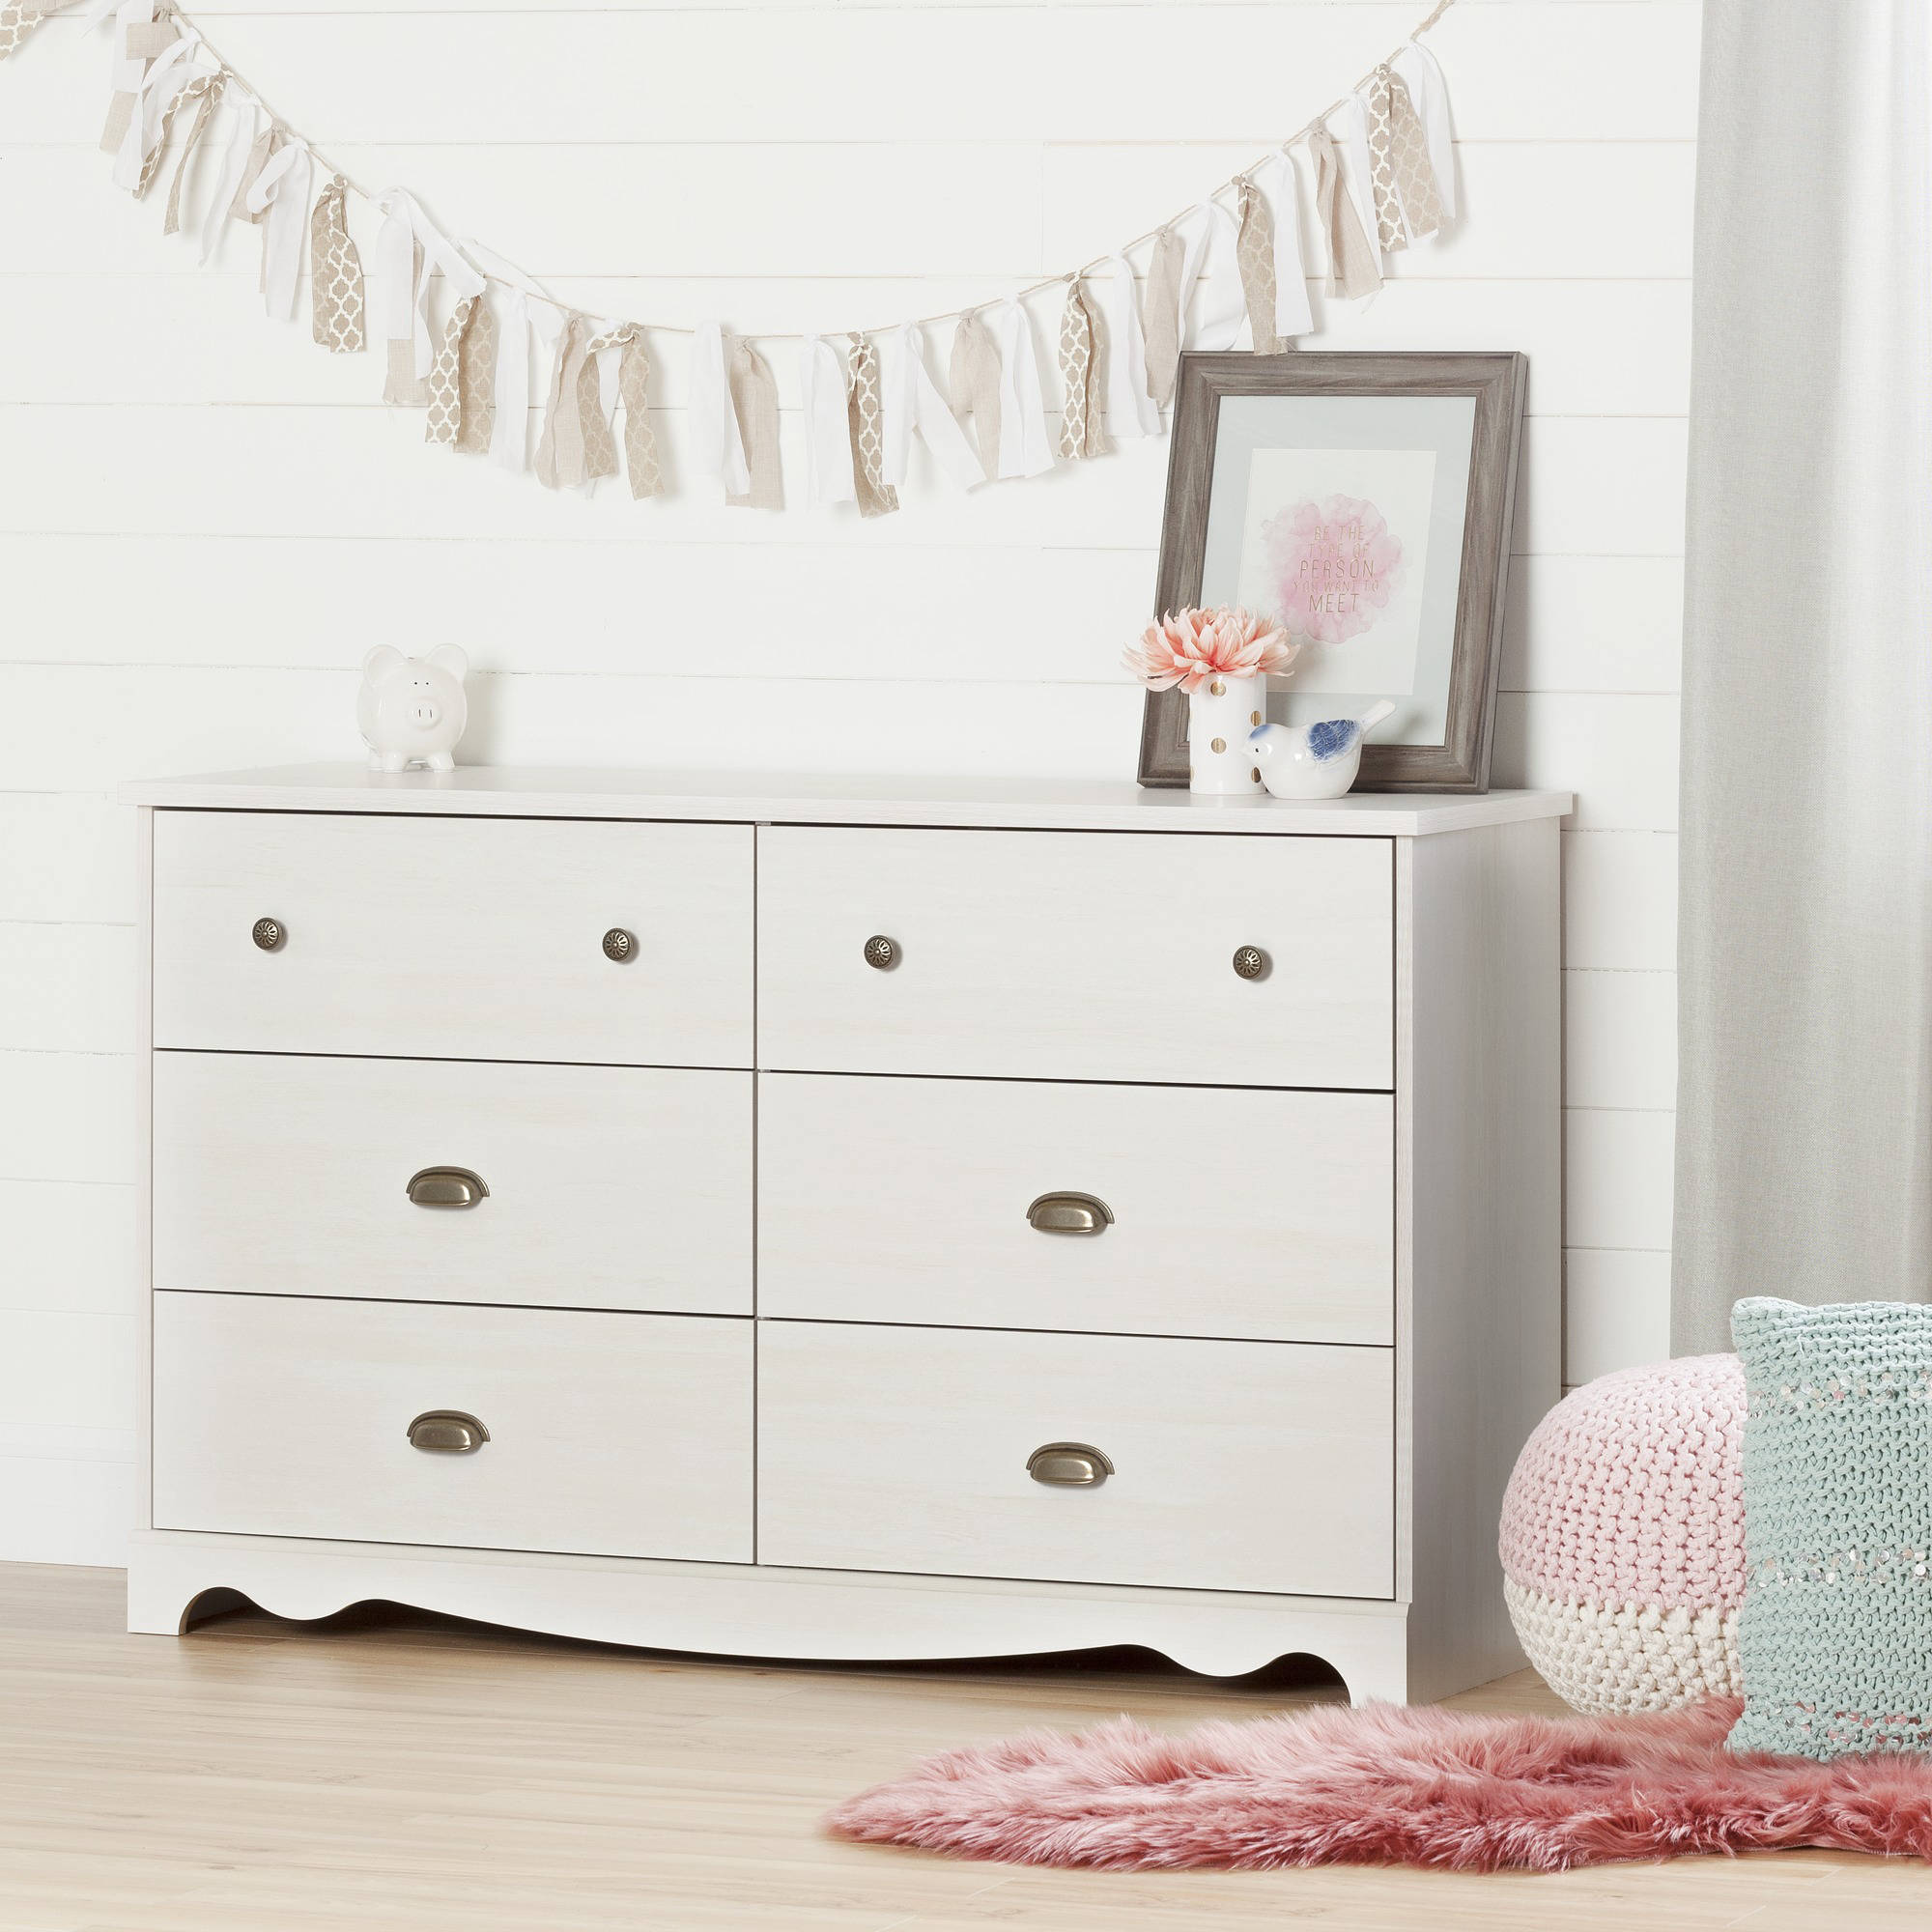 South Shore Caravell 6-Drawer Double Dresser, White Wash by South Shore